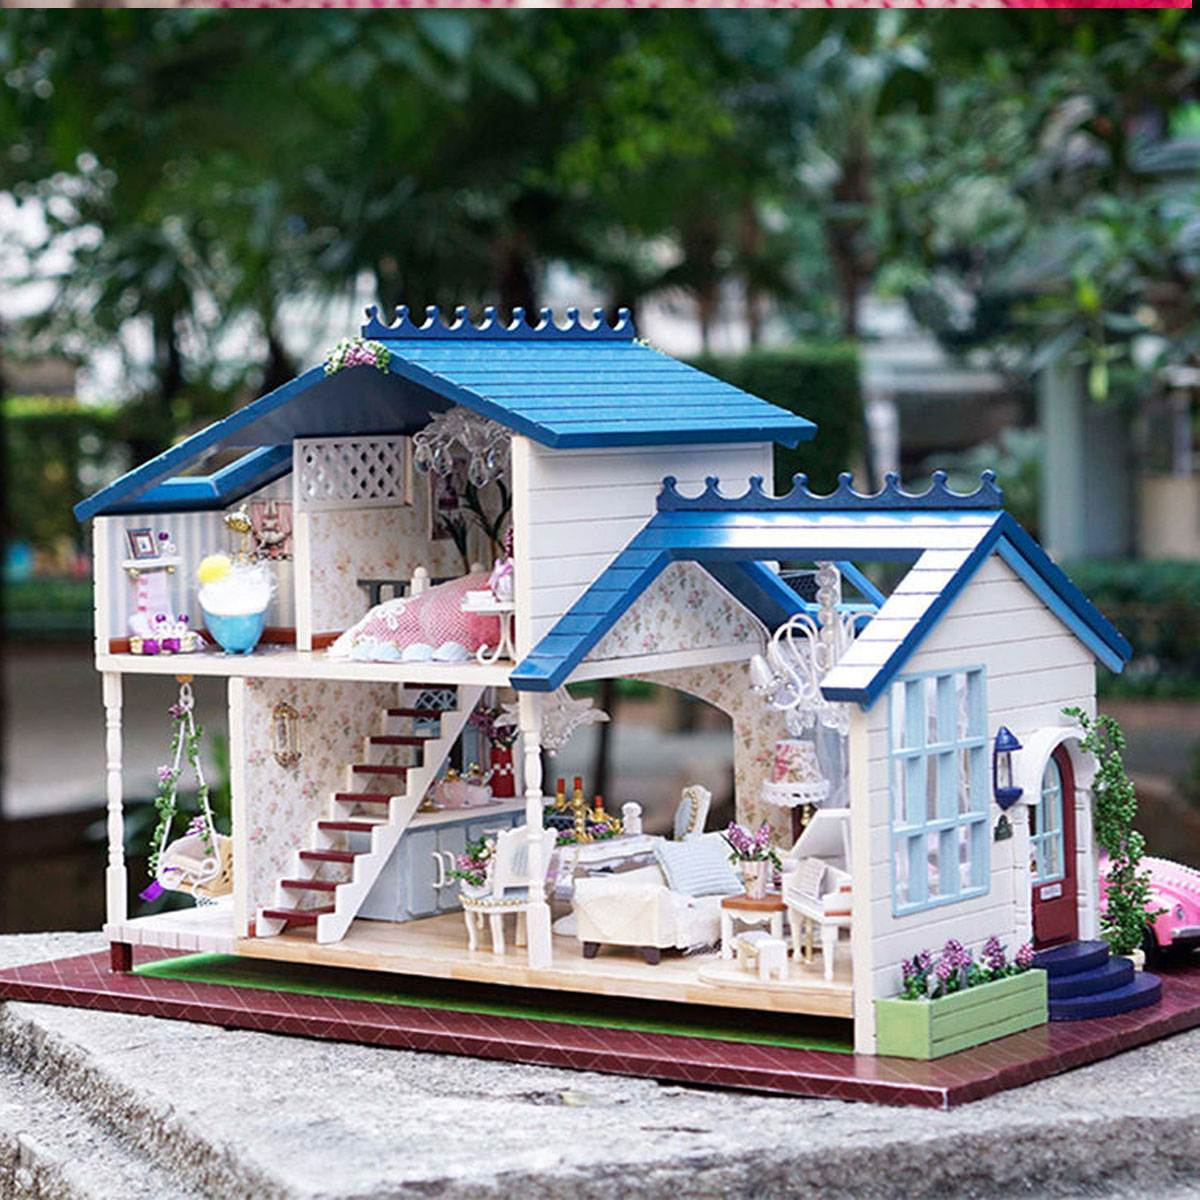 Music LED Light Miniature Doll House Provence Dollhouse DIY Kit Wooden  House Model Toy With Furniture Birthday Christmas Gifts In Doll Houses From  Toys ...